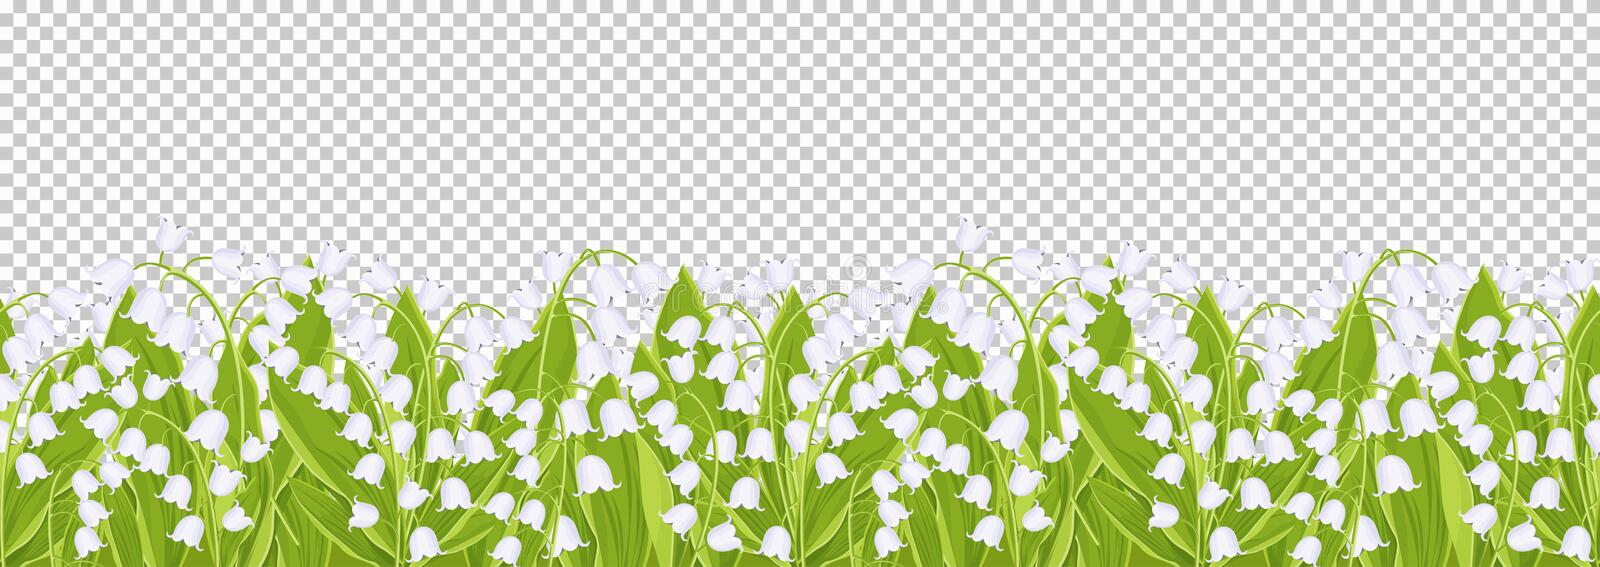 Seamless border with tender spring flowers lily of the valley, floral banner, frame, vector illustration. White buds forest flower. Bluebell, green stalks and royalty free illustration